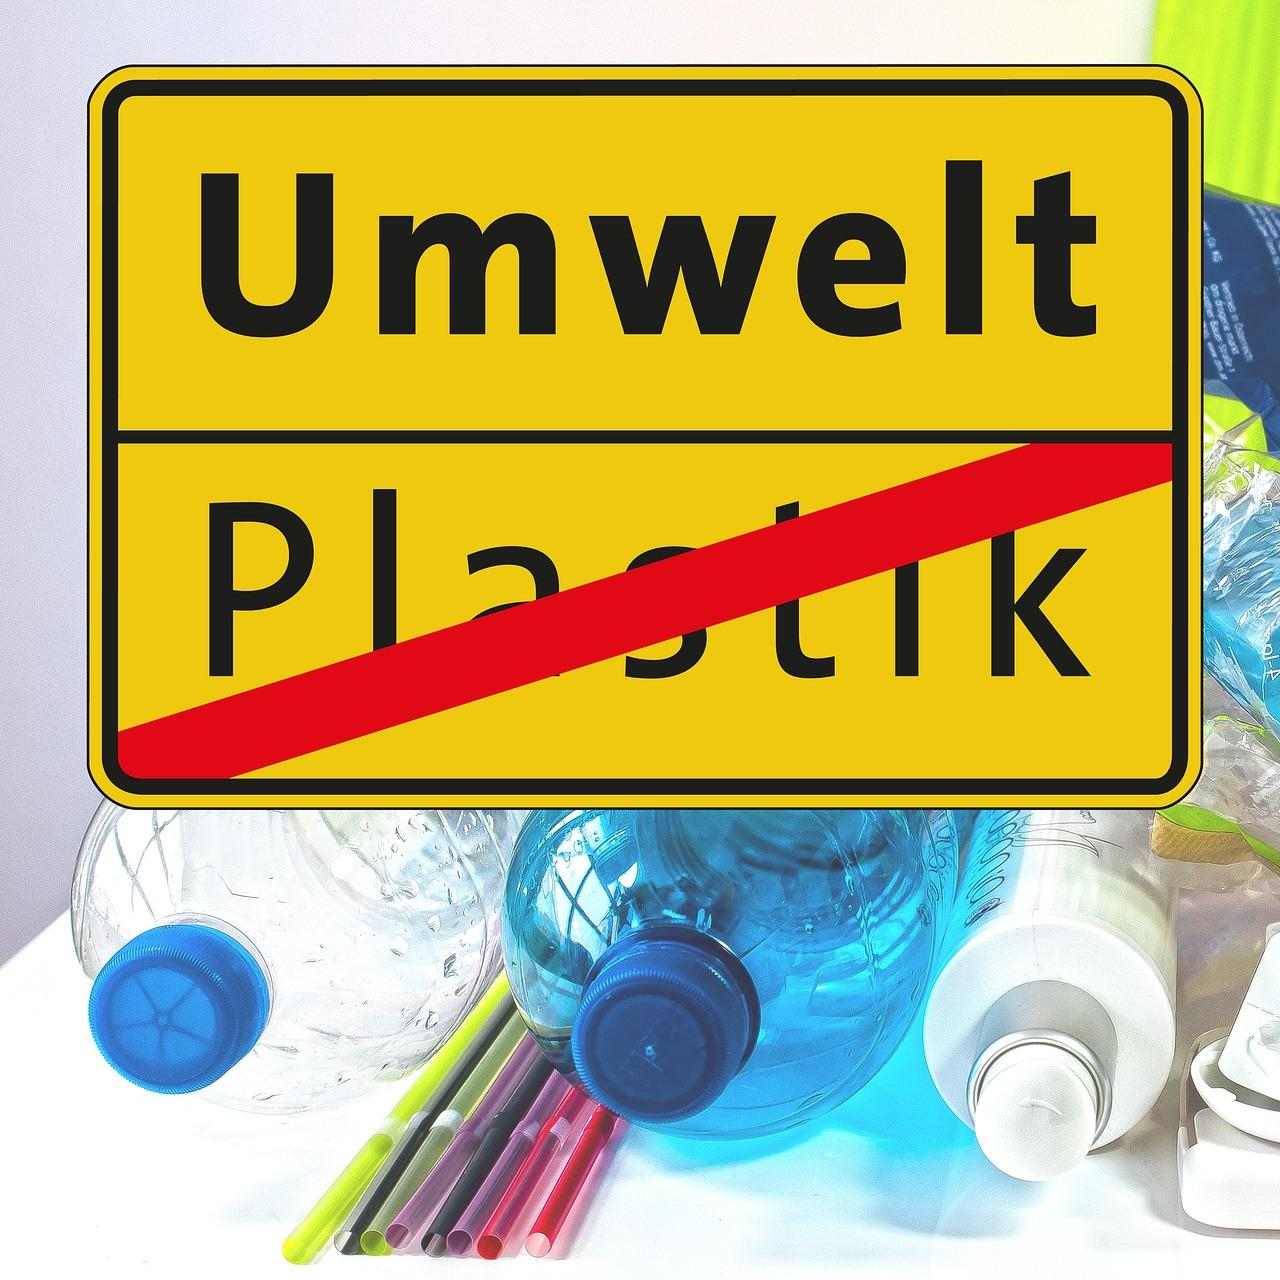 Plastikflaschen (c) Bild von Thanks for your Like • donations welcome auf Pixabay